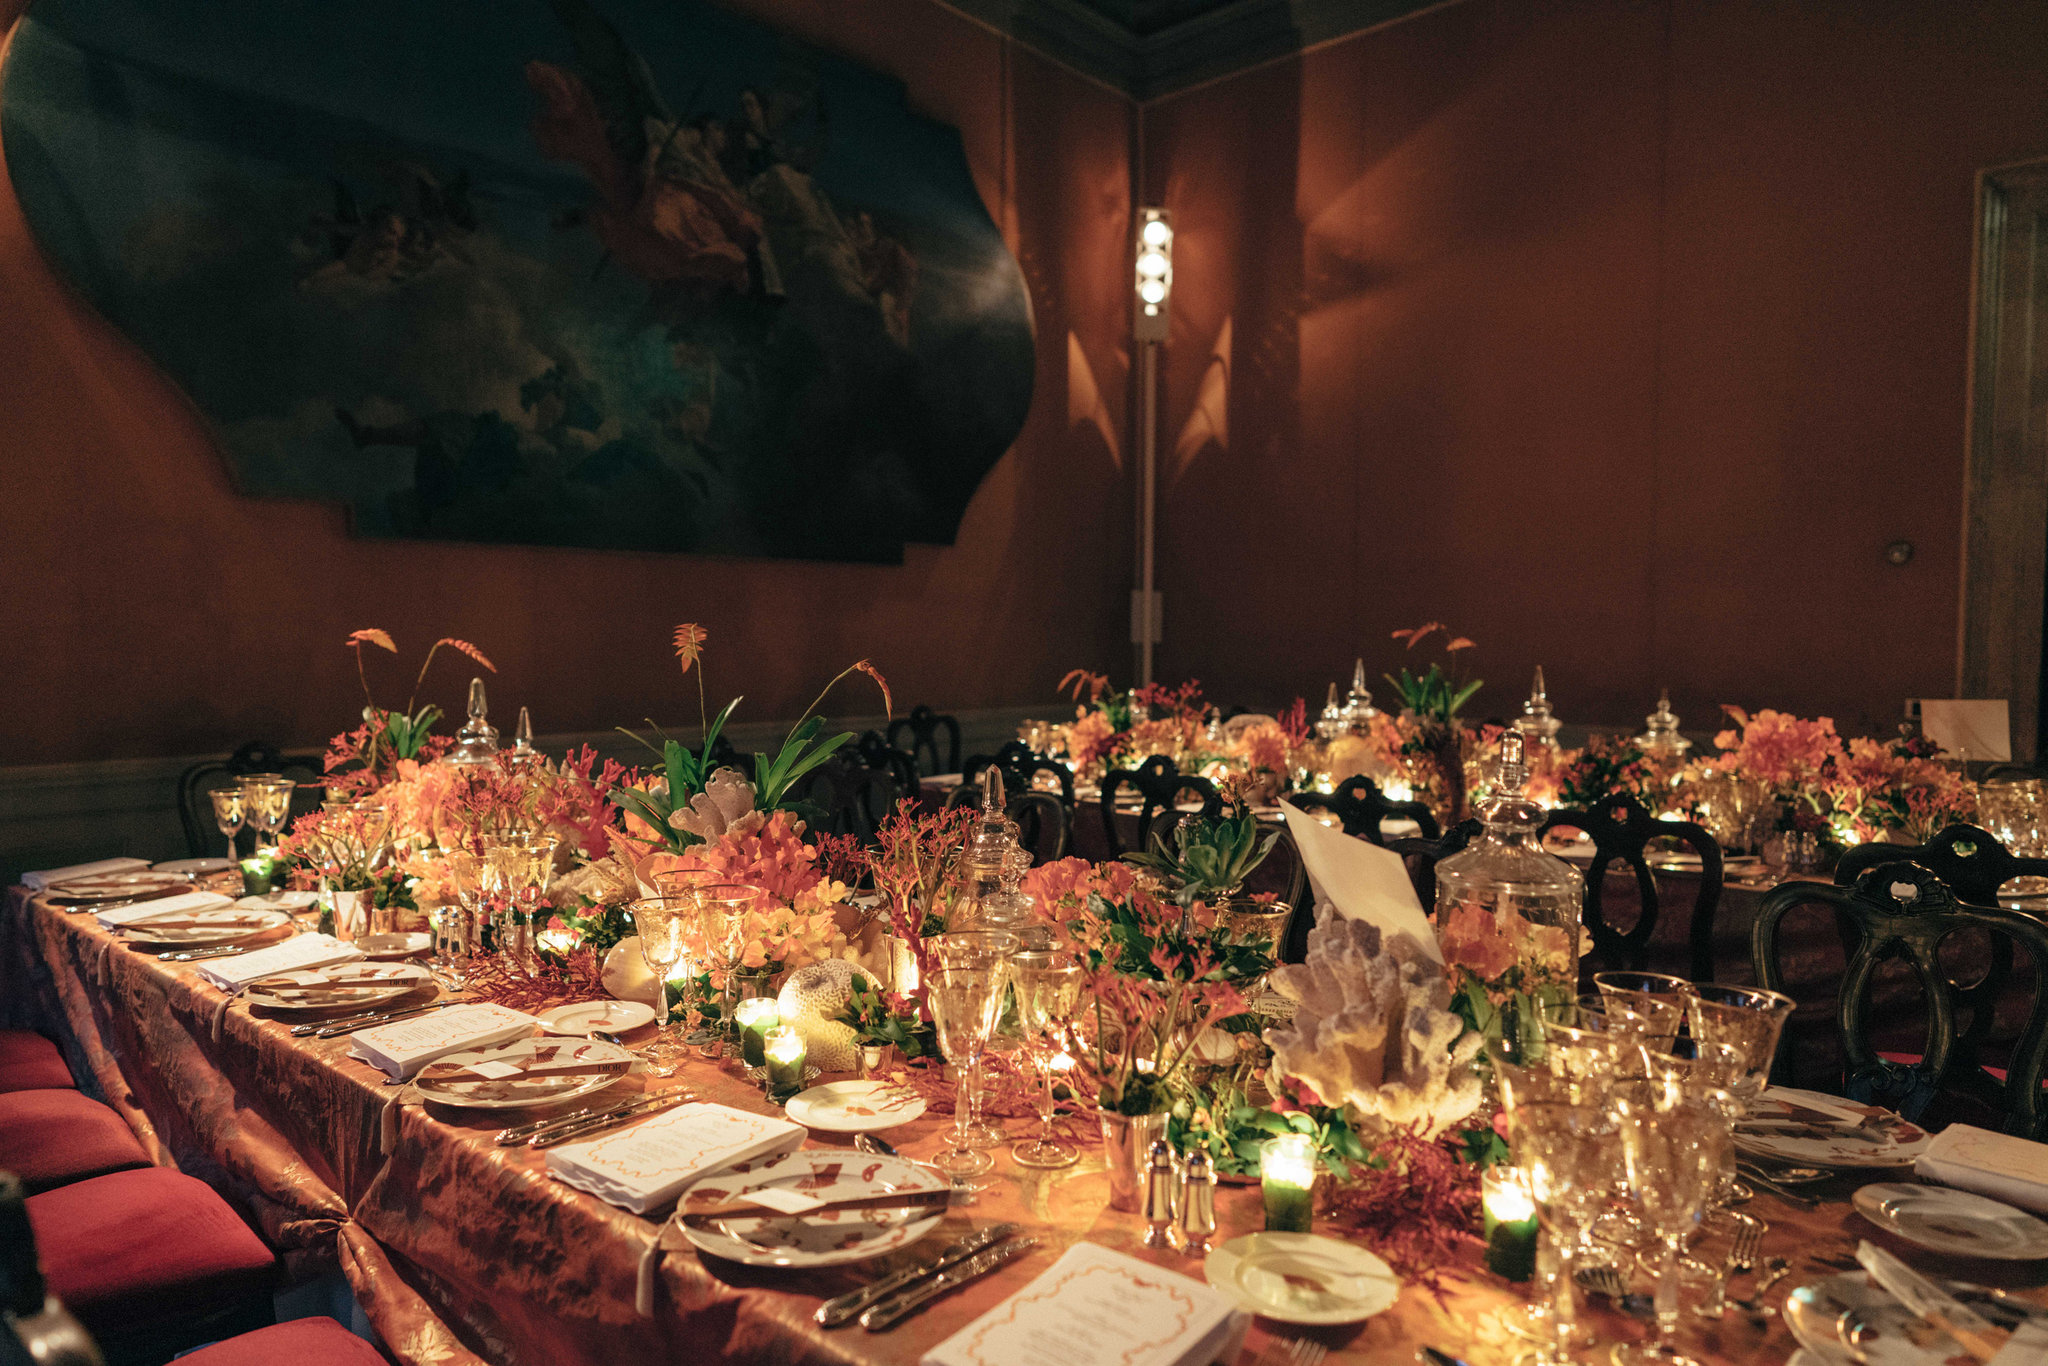 How To Decorate A Dinner Table Like A Professional The New York Times